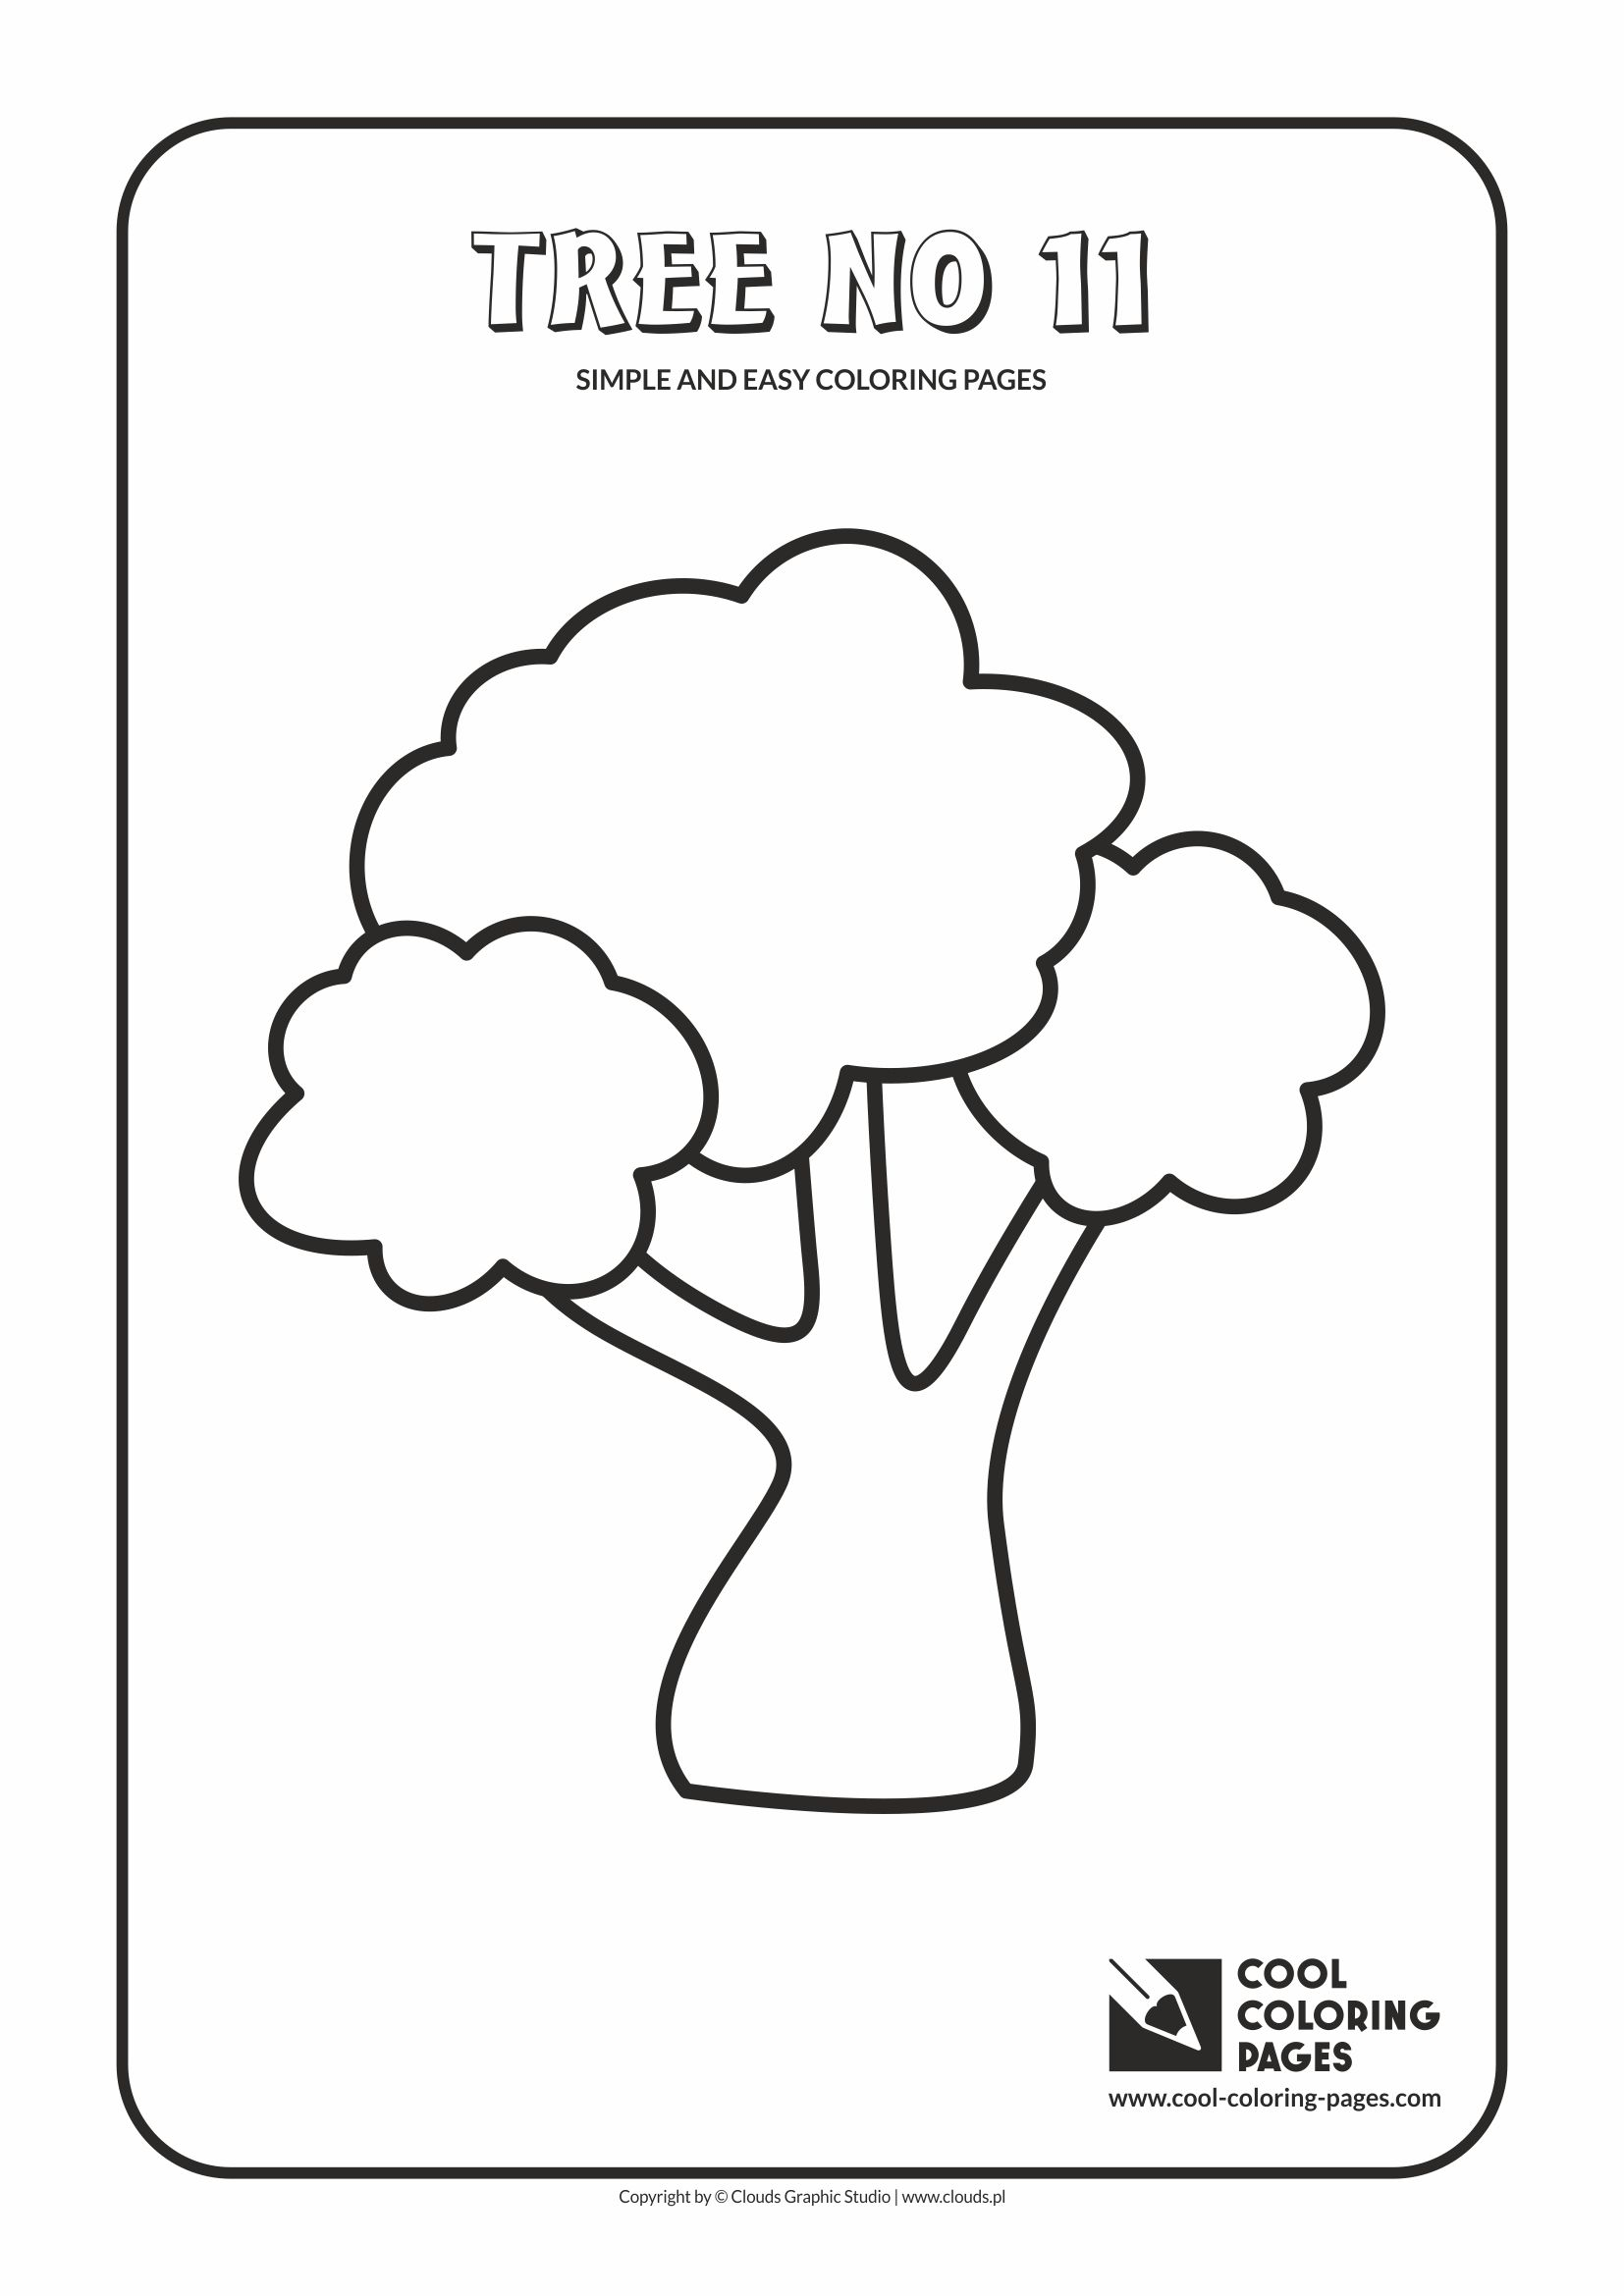 Simple and easy coloring pages for toddlers - Tree no 11